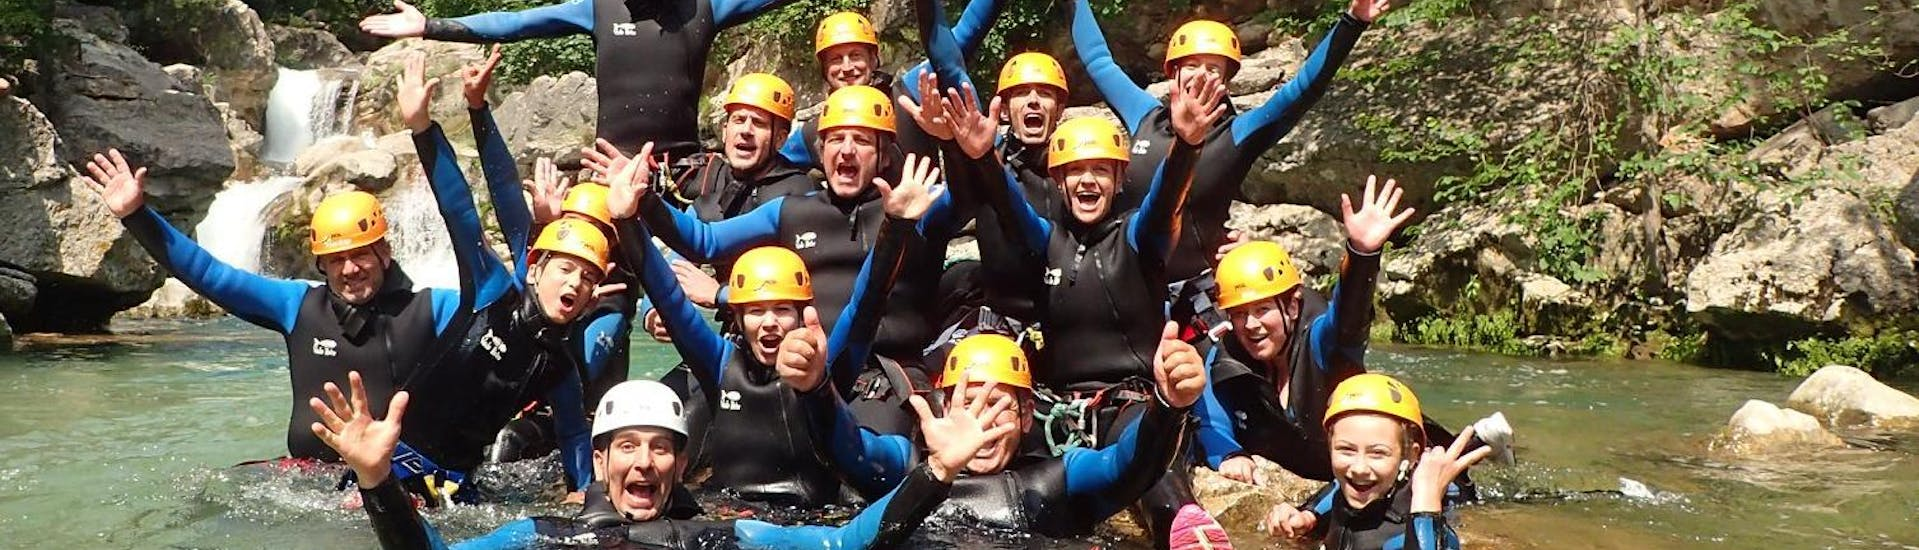 A group of friends are having a great time during their canyoning descent with FunTrip in the Alpes-Maritimes.